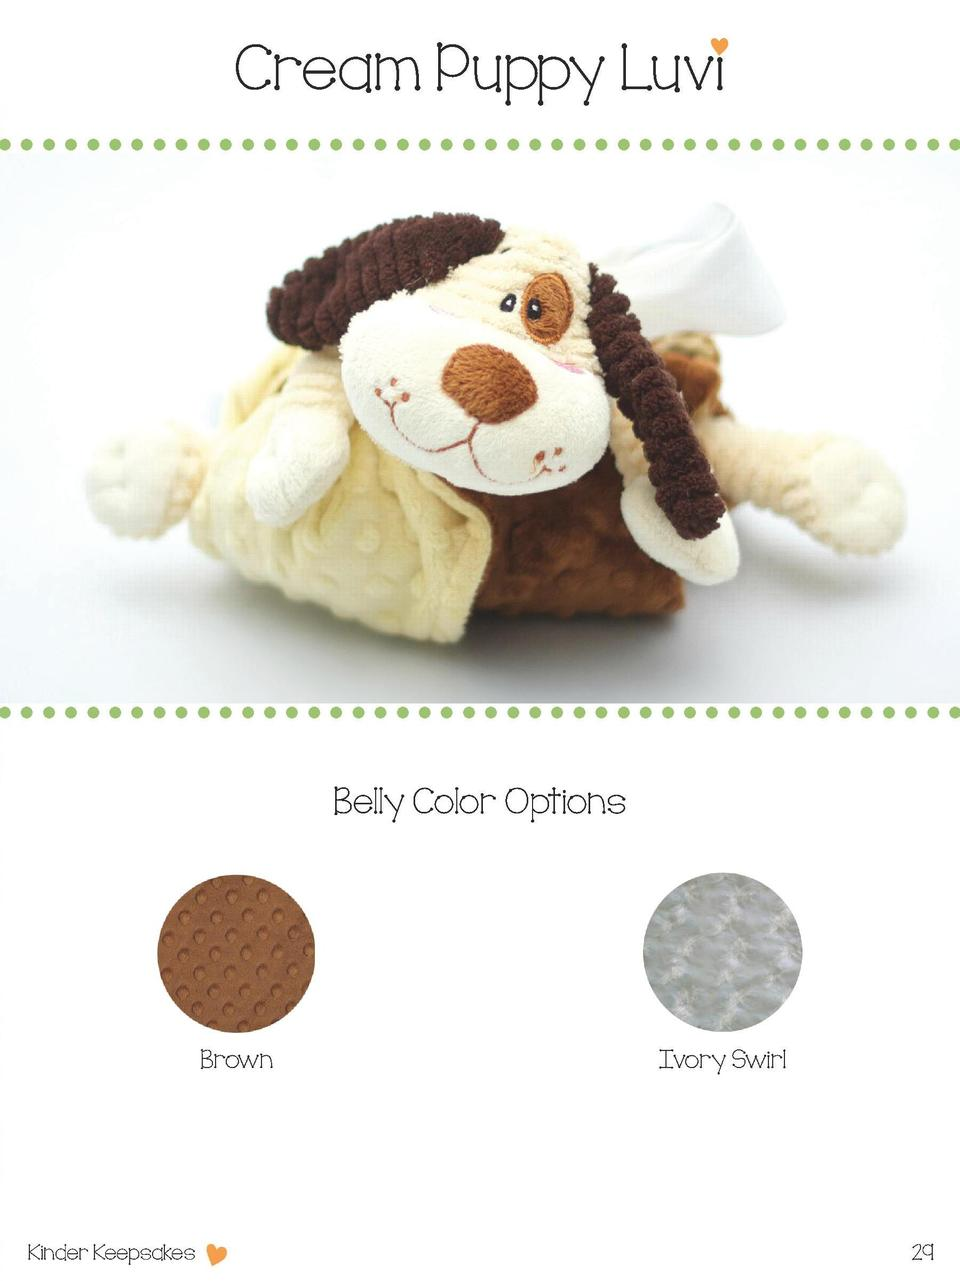 Cream Puppy Luvi  Belly Color Options  Brown  Kinder Keepsakes  Ivory Swirl  29